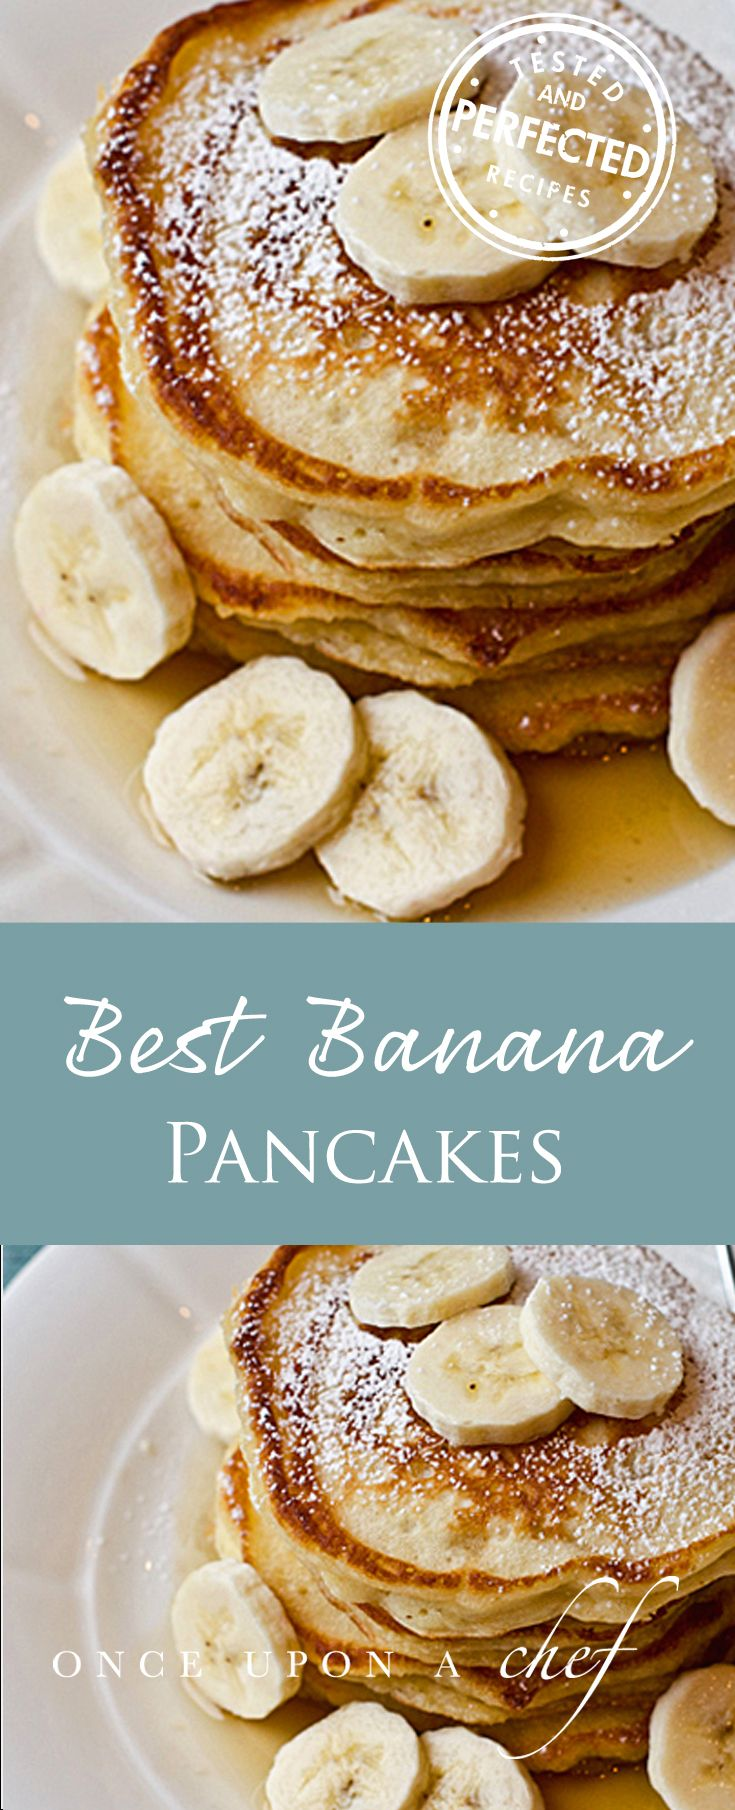 Banana Pancakes Once Upon A Chef Recipe Breakfast Banana Recipes Recipes